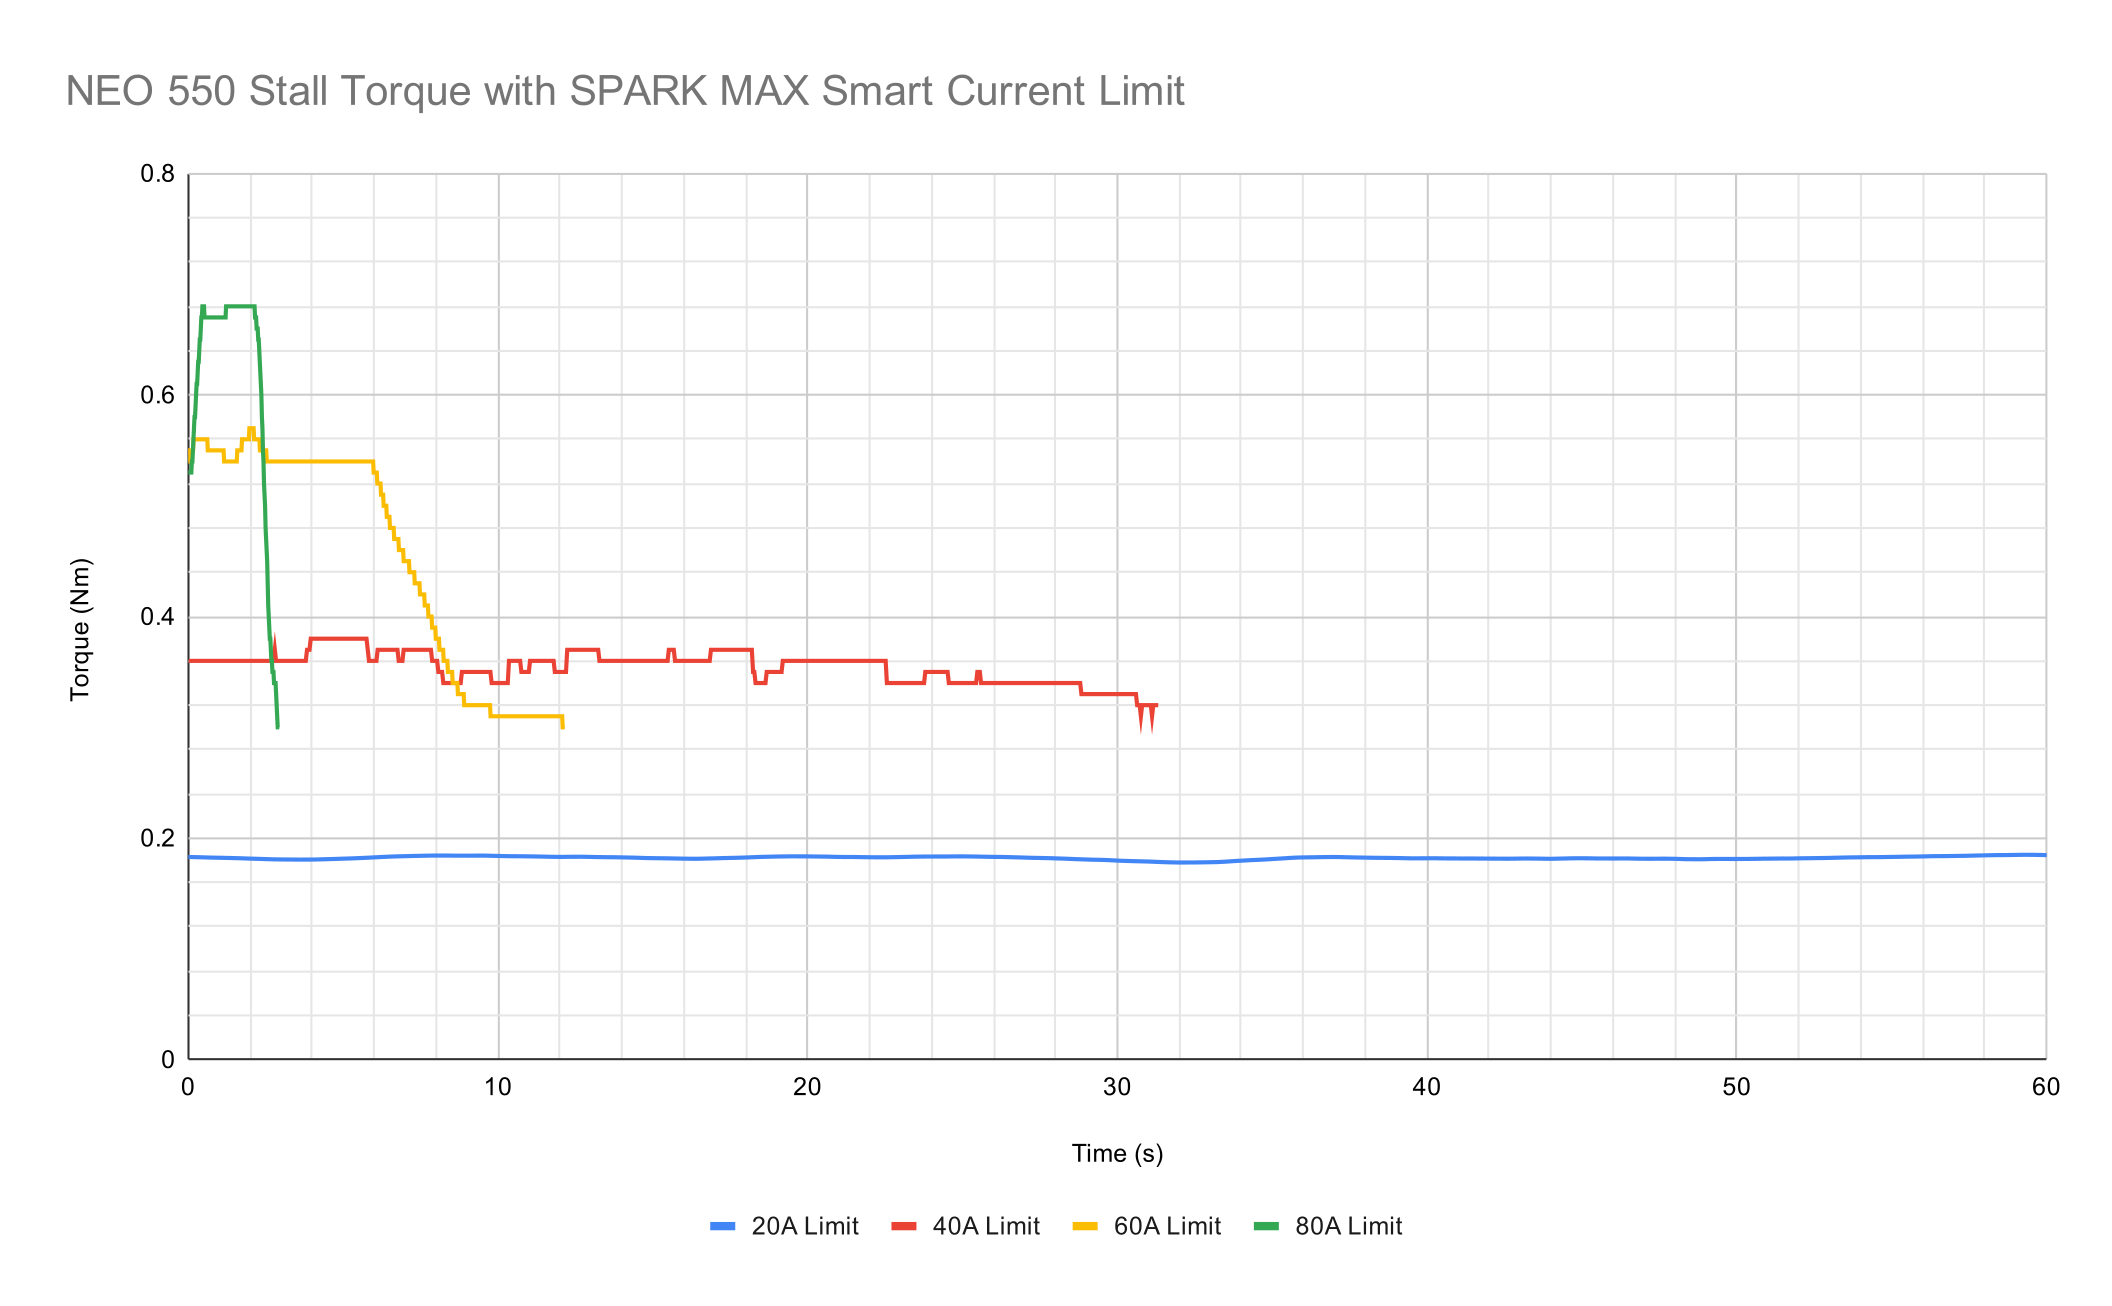 neo-550-stall-torque-with-spark-max-smart-current-limit.png